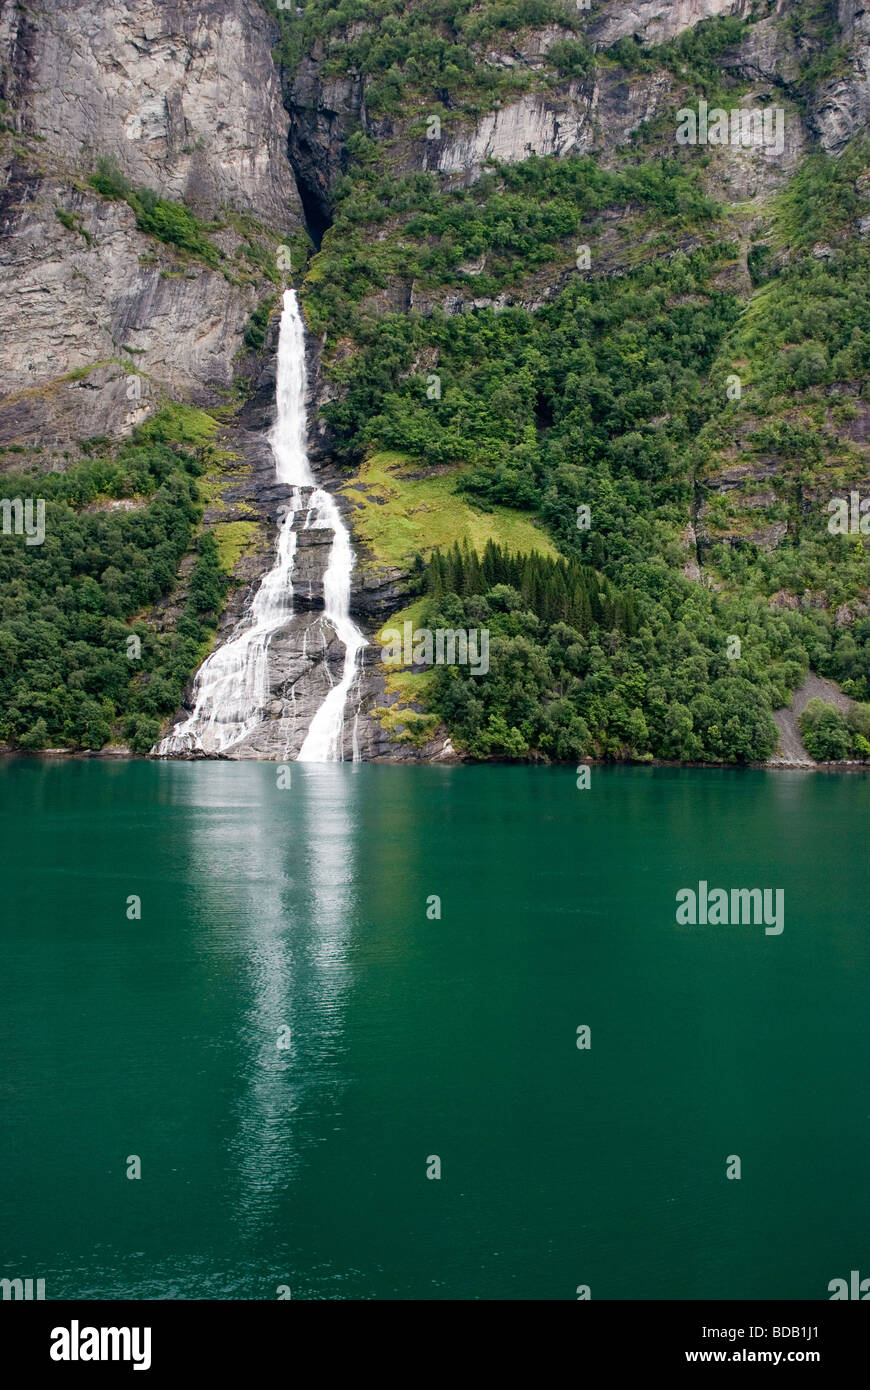 Waterfall in Geirangerfjord, Norway - Stock Image